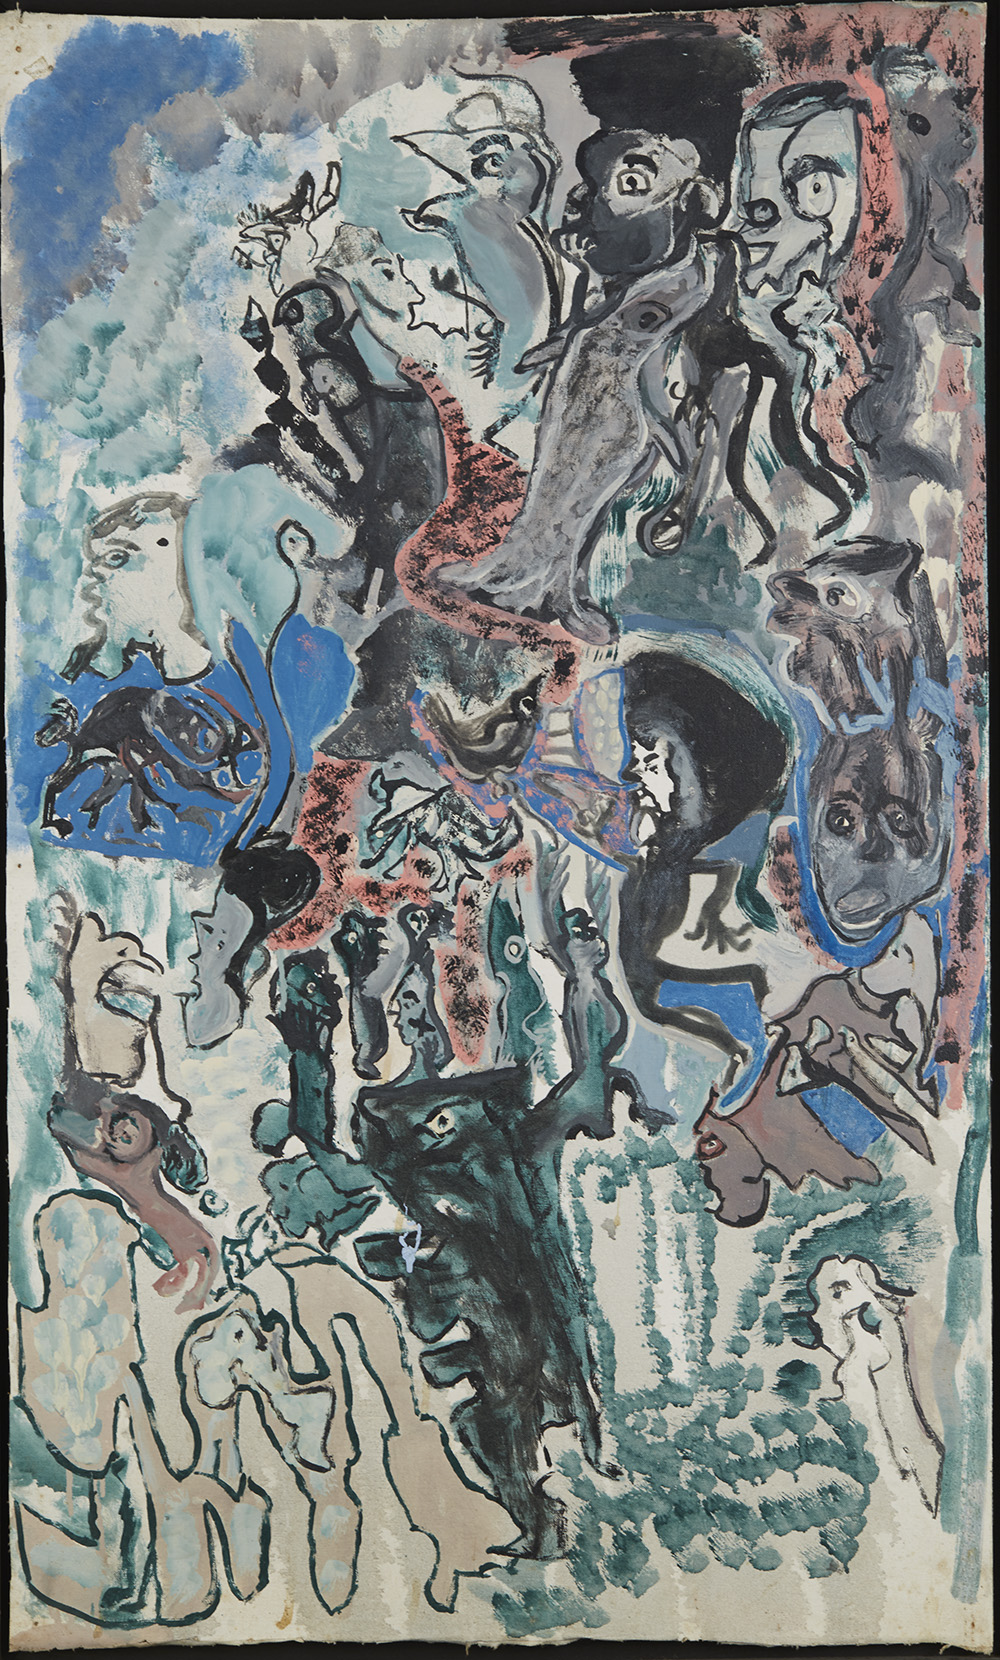 Leonard Daley Untitled, 1993 Mixed media on canvas 39 x 23.5 inches 99.1 x 59.7 cm LE 12